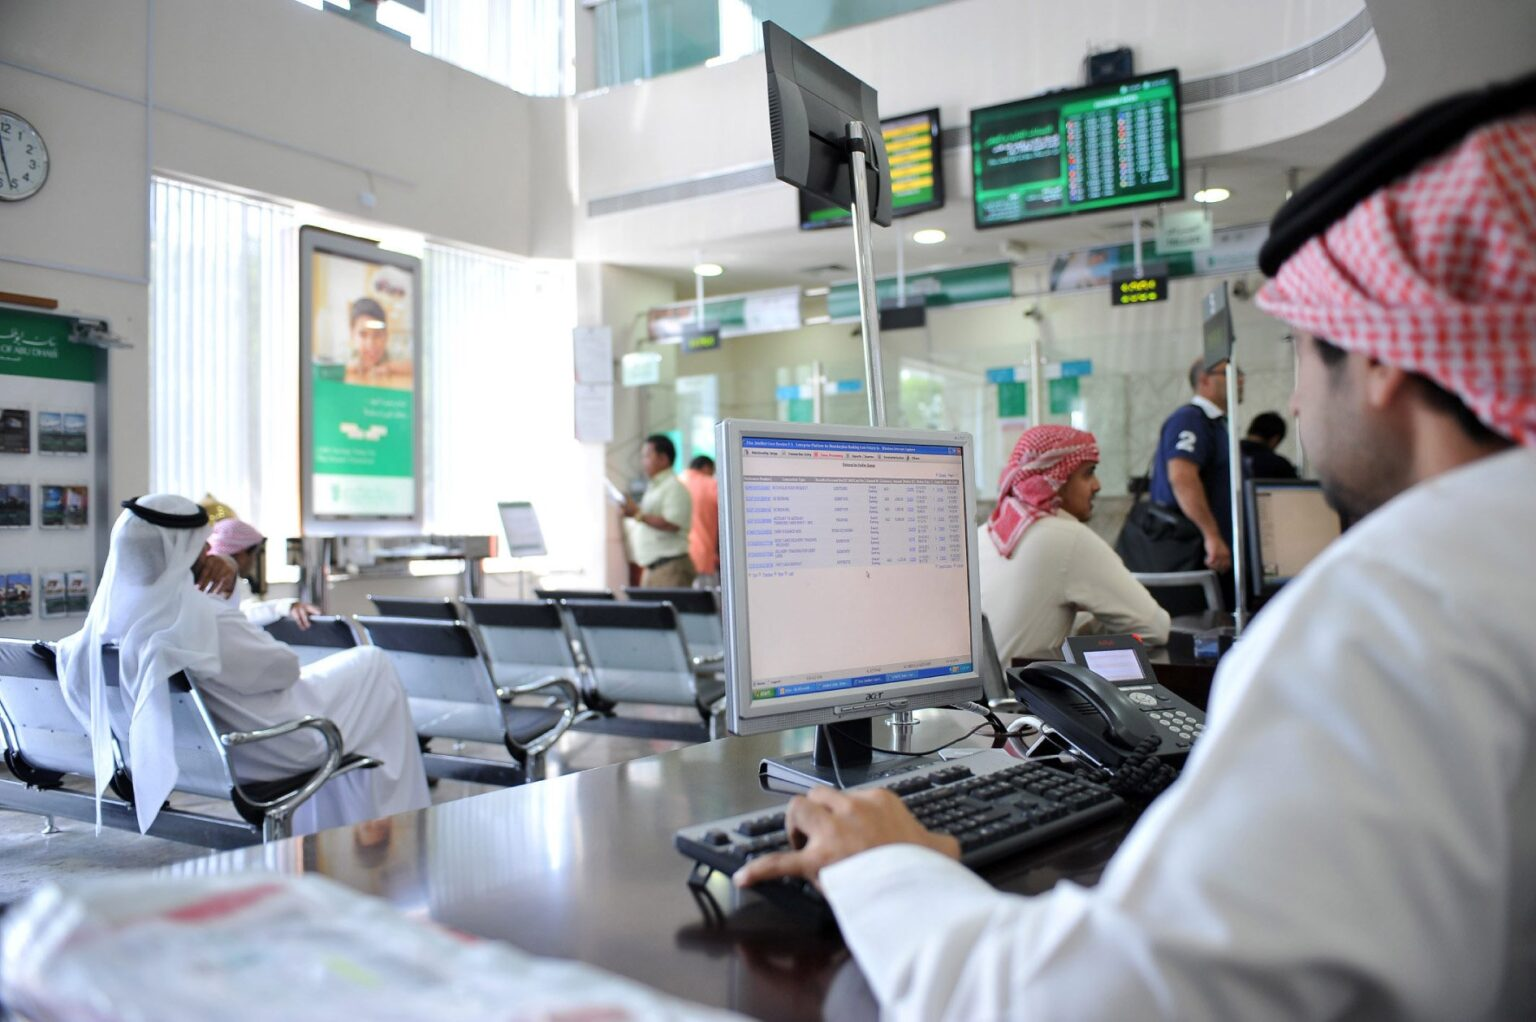 Saudi banks' profits fell in 2020 to their lowest levels in four years, due to the Coronavirus pandemic repercussions.